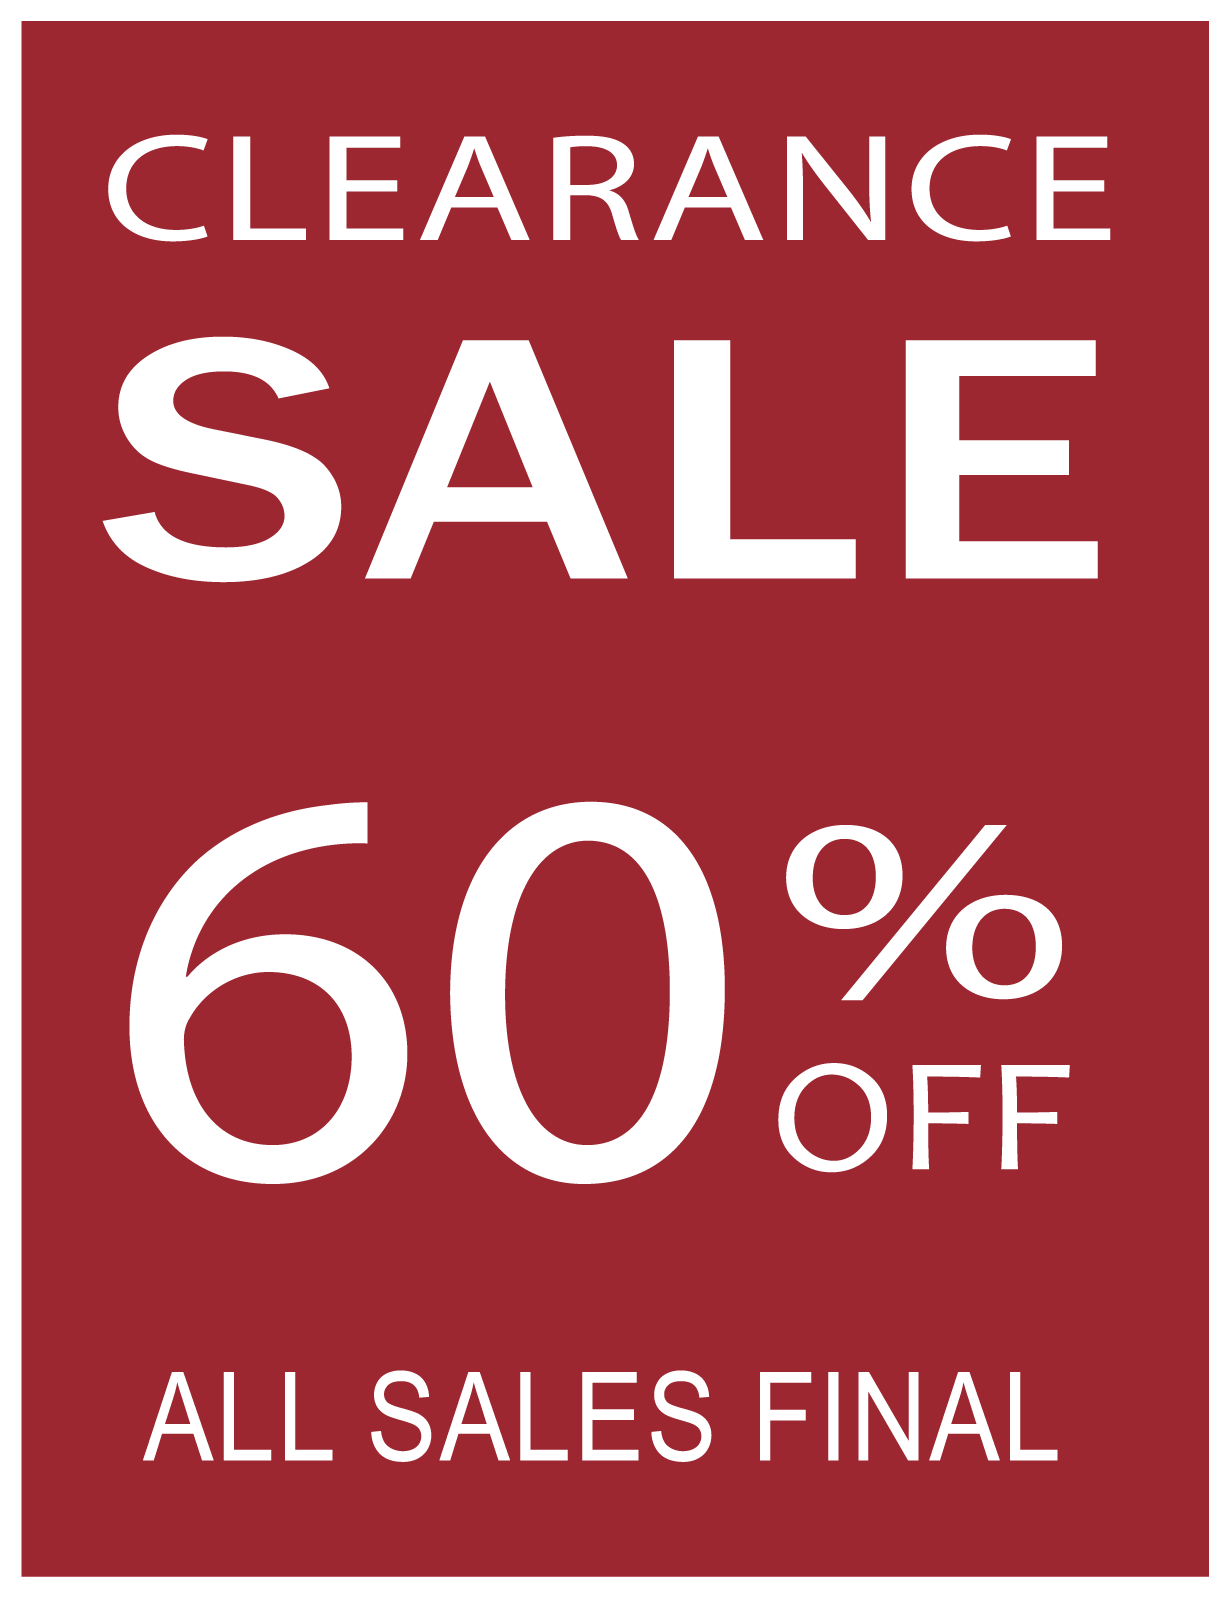 Sale 60% off Sign